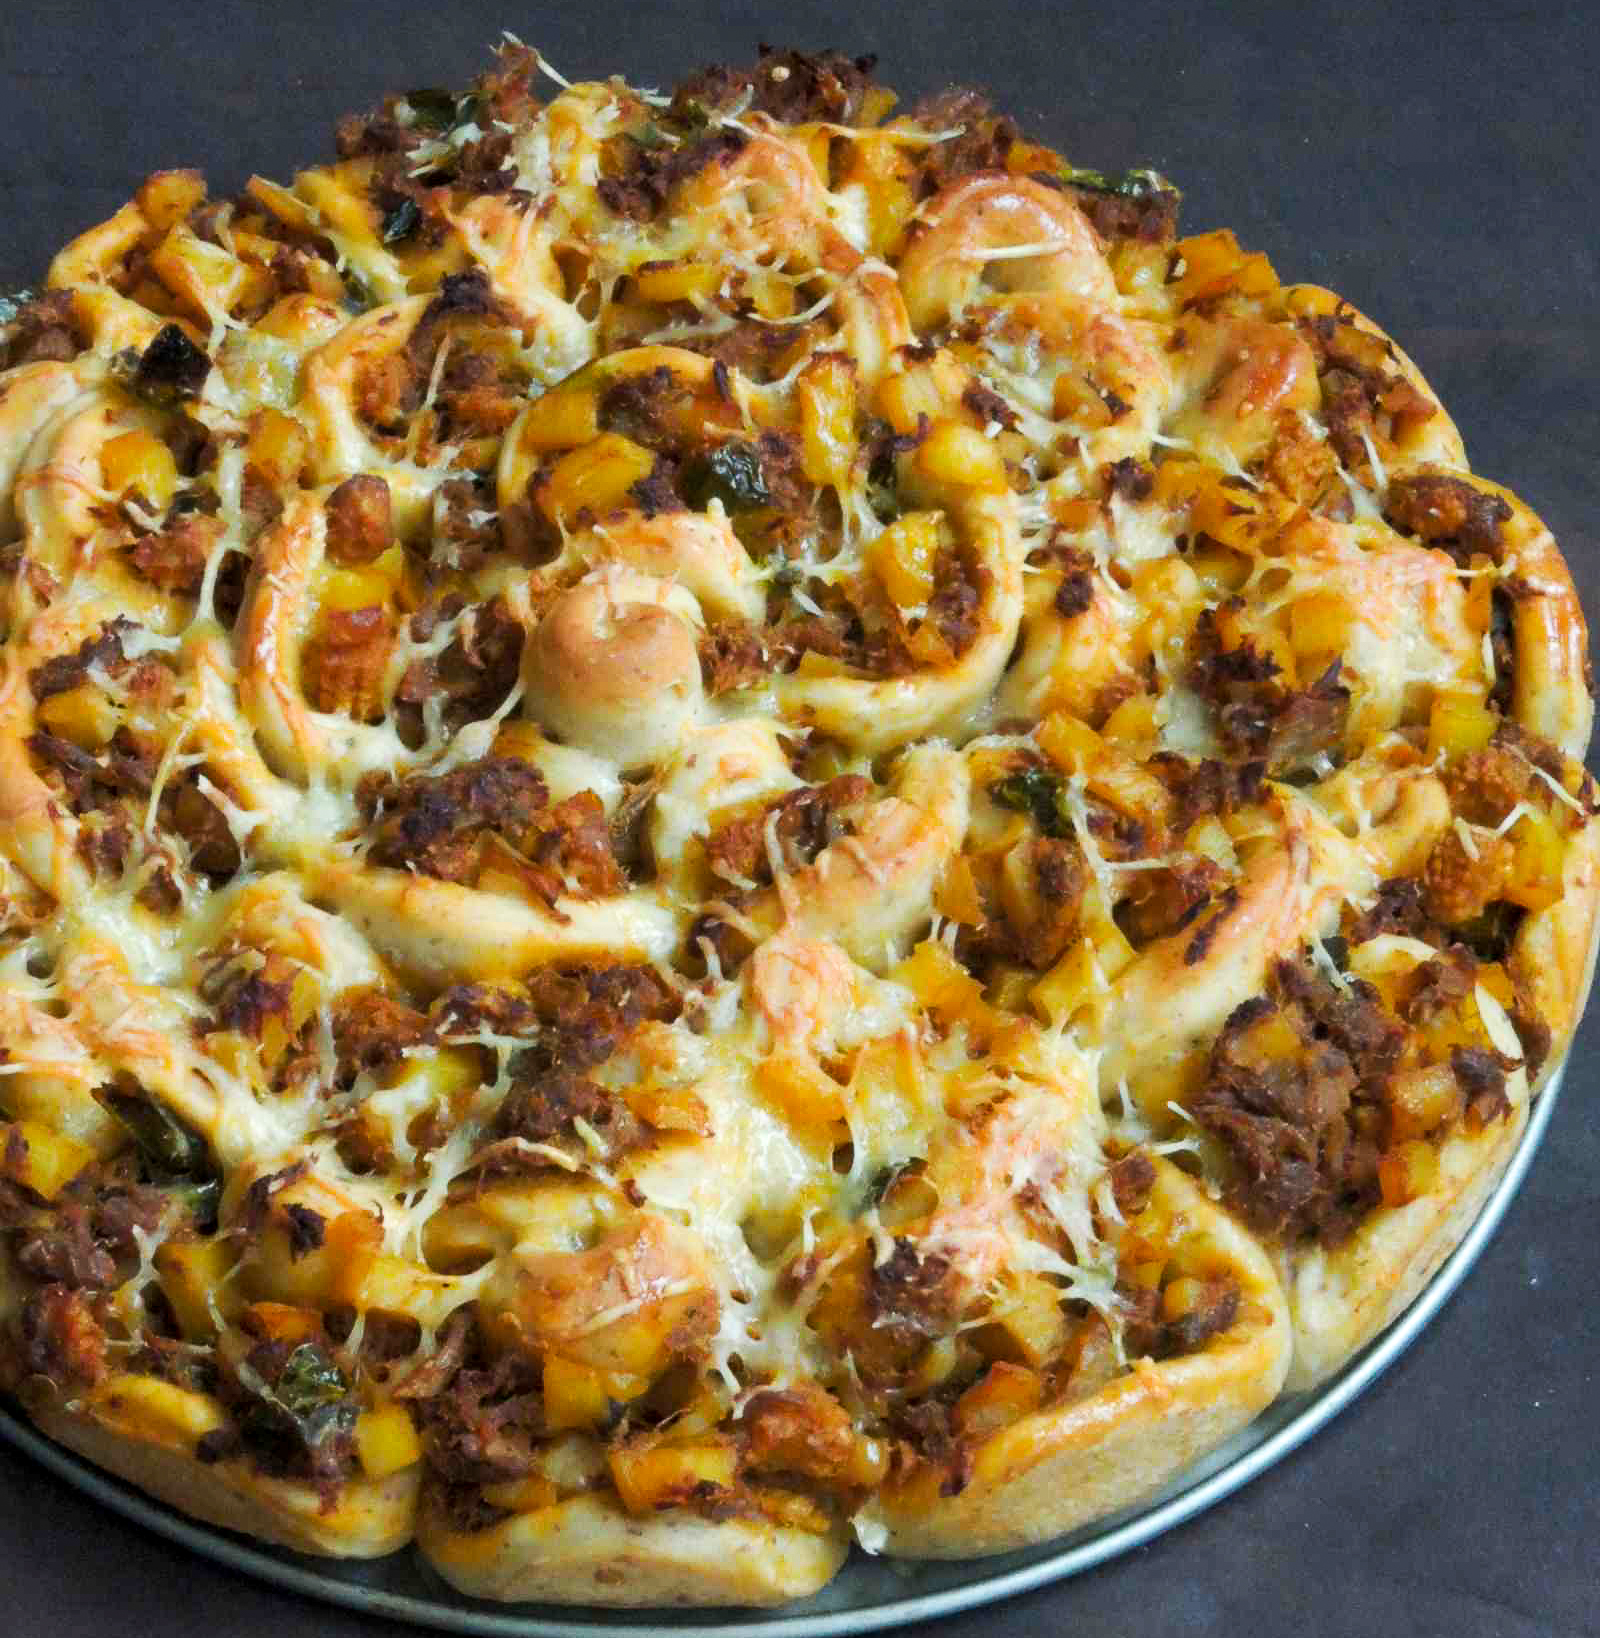 Cheesy spicy pull apart bread recipe with indian spices by cheesy spicy pull apart bread recipe with indian spices by archanas kitchen forumfinder Choice Image